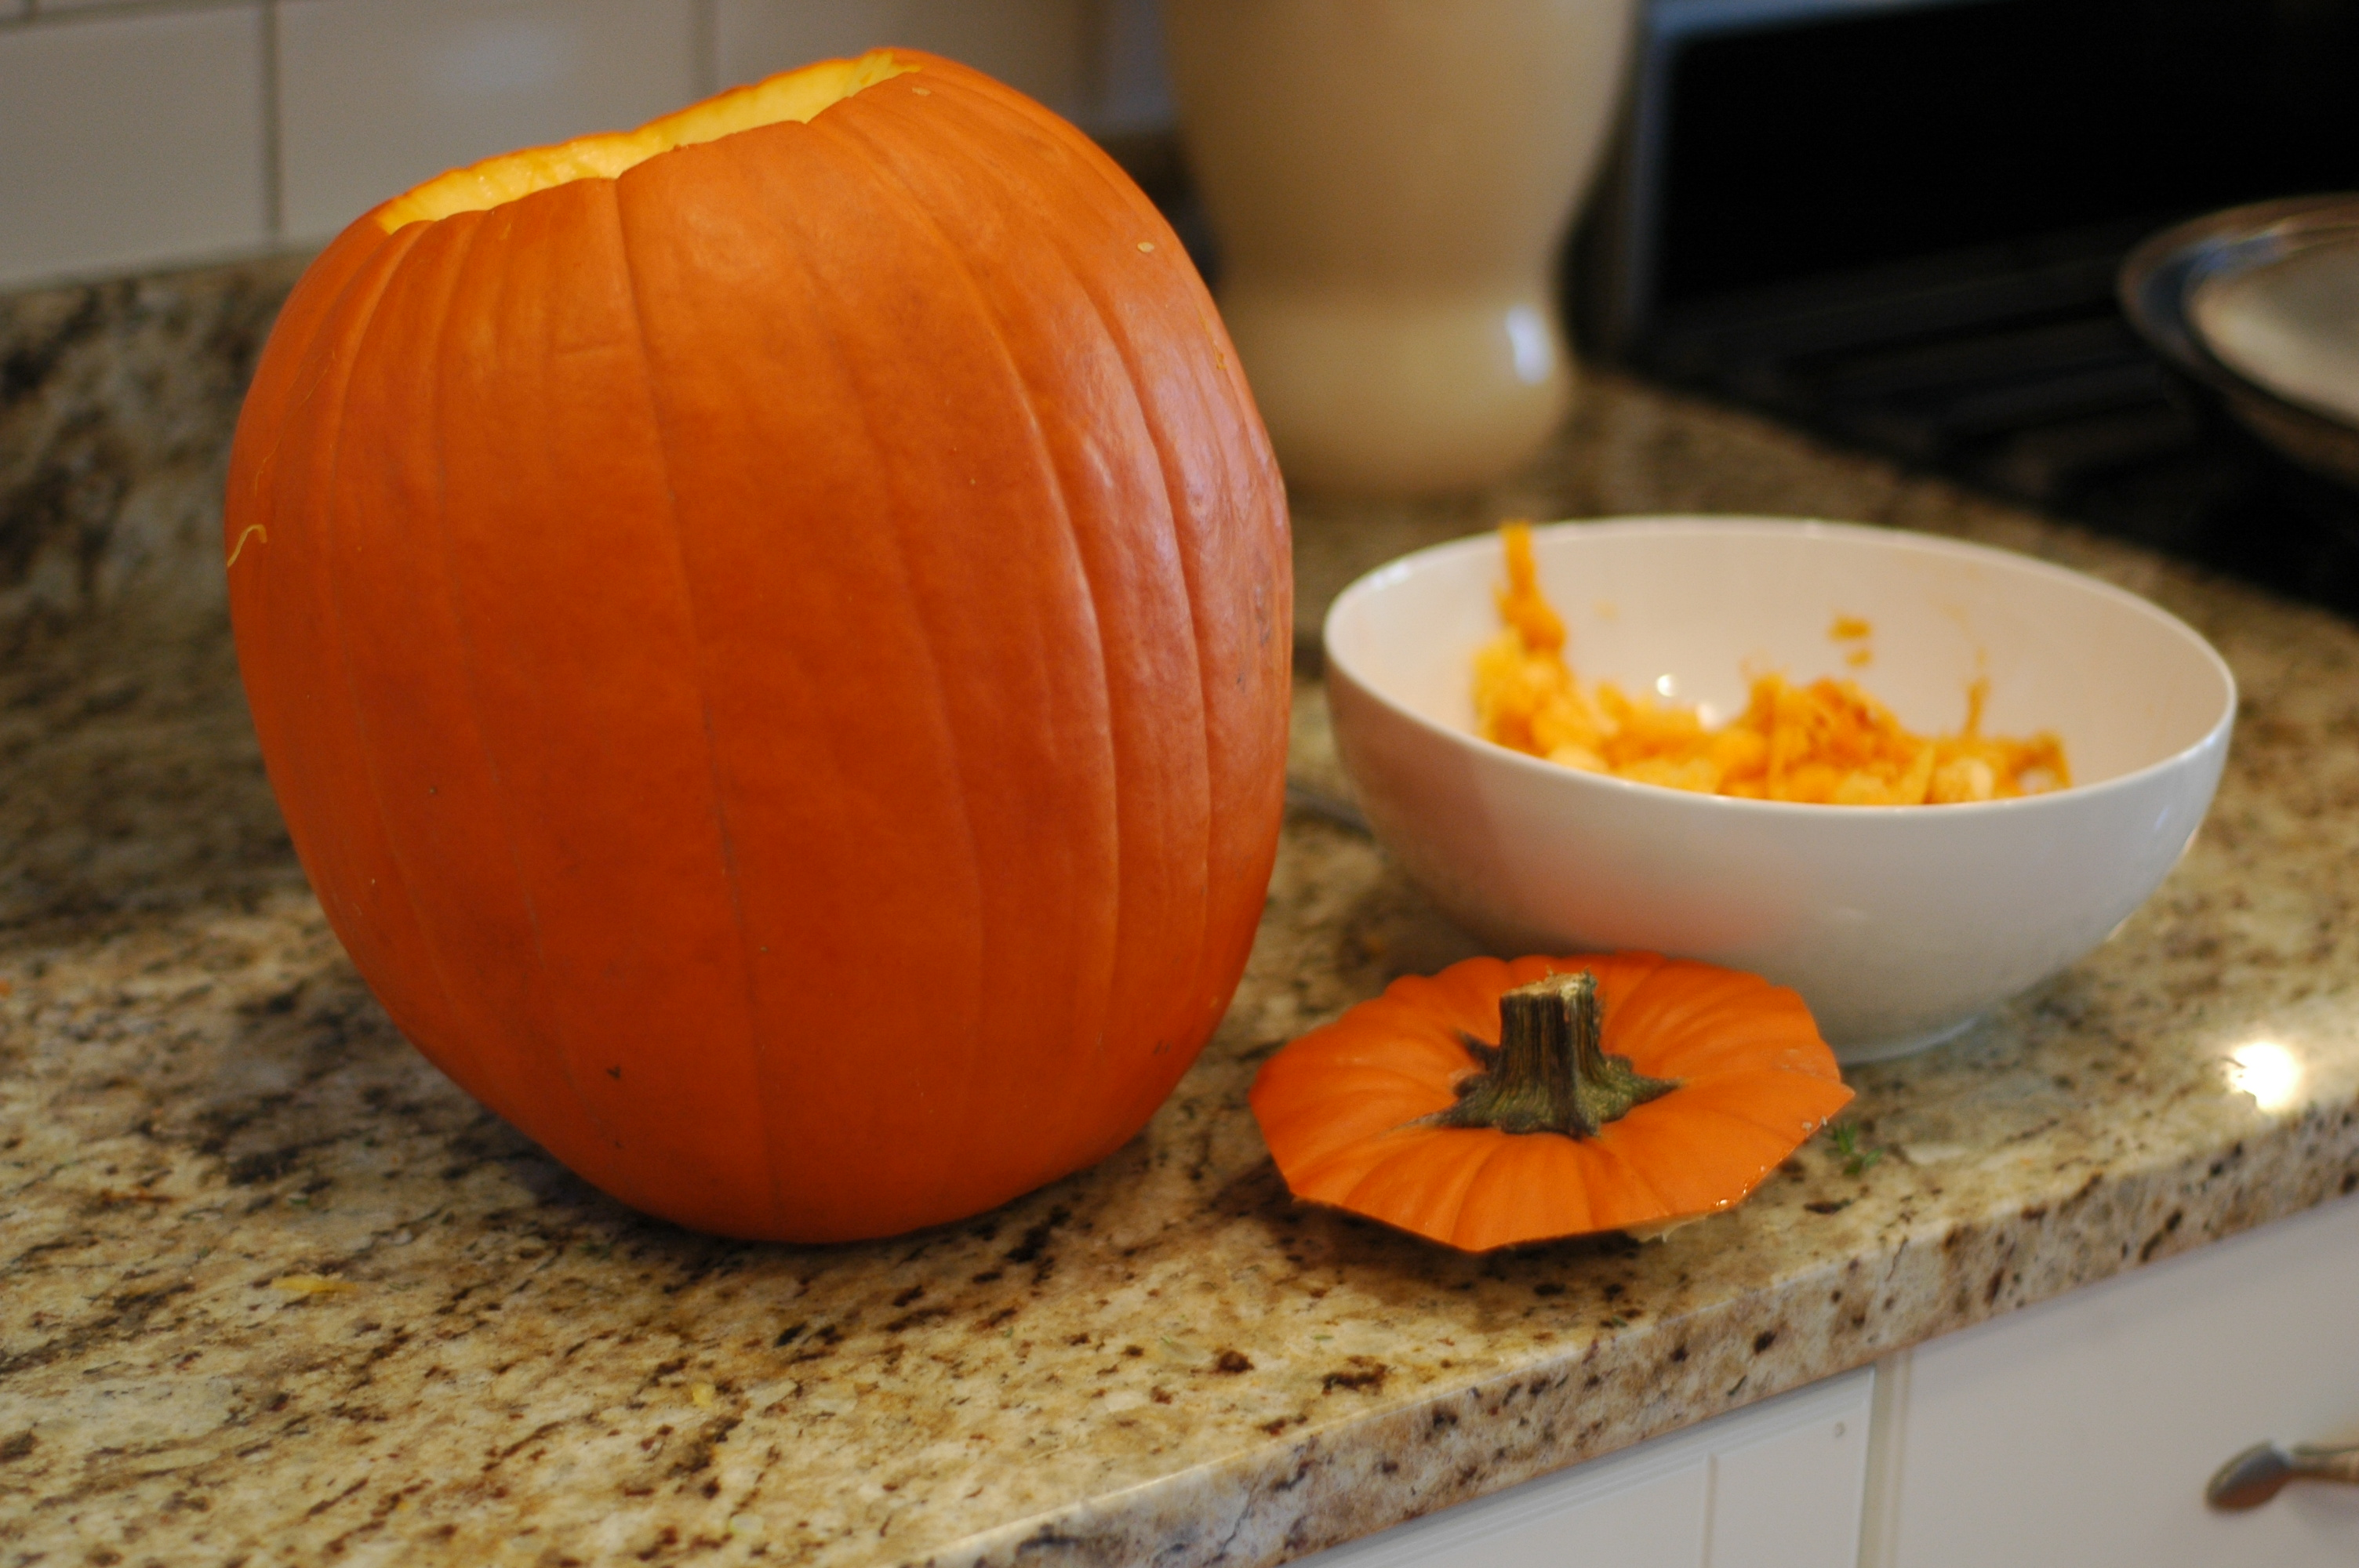 Pumpkin Stuffed with Everything Good - but i'm hungry